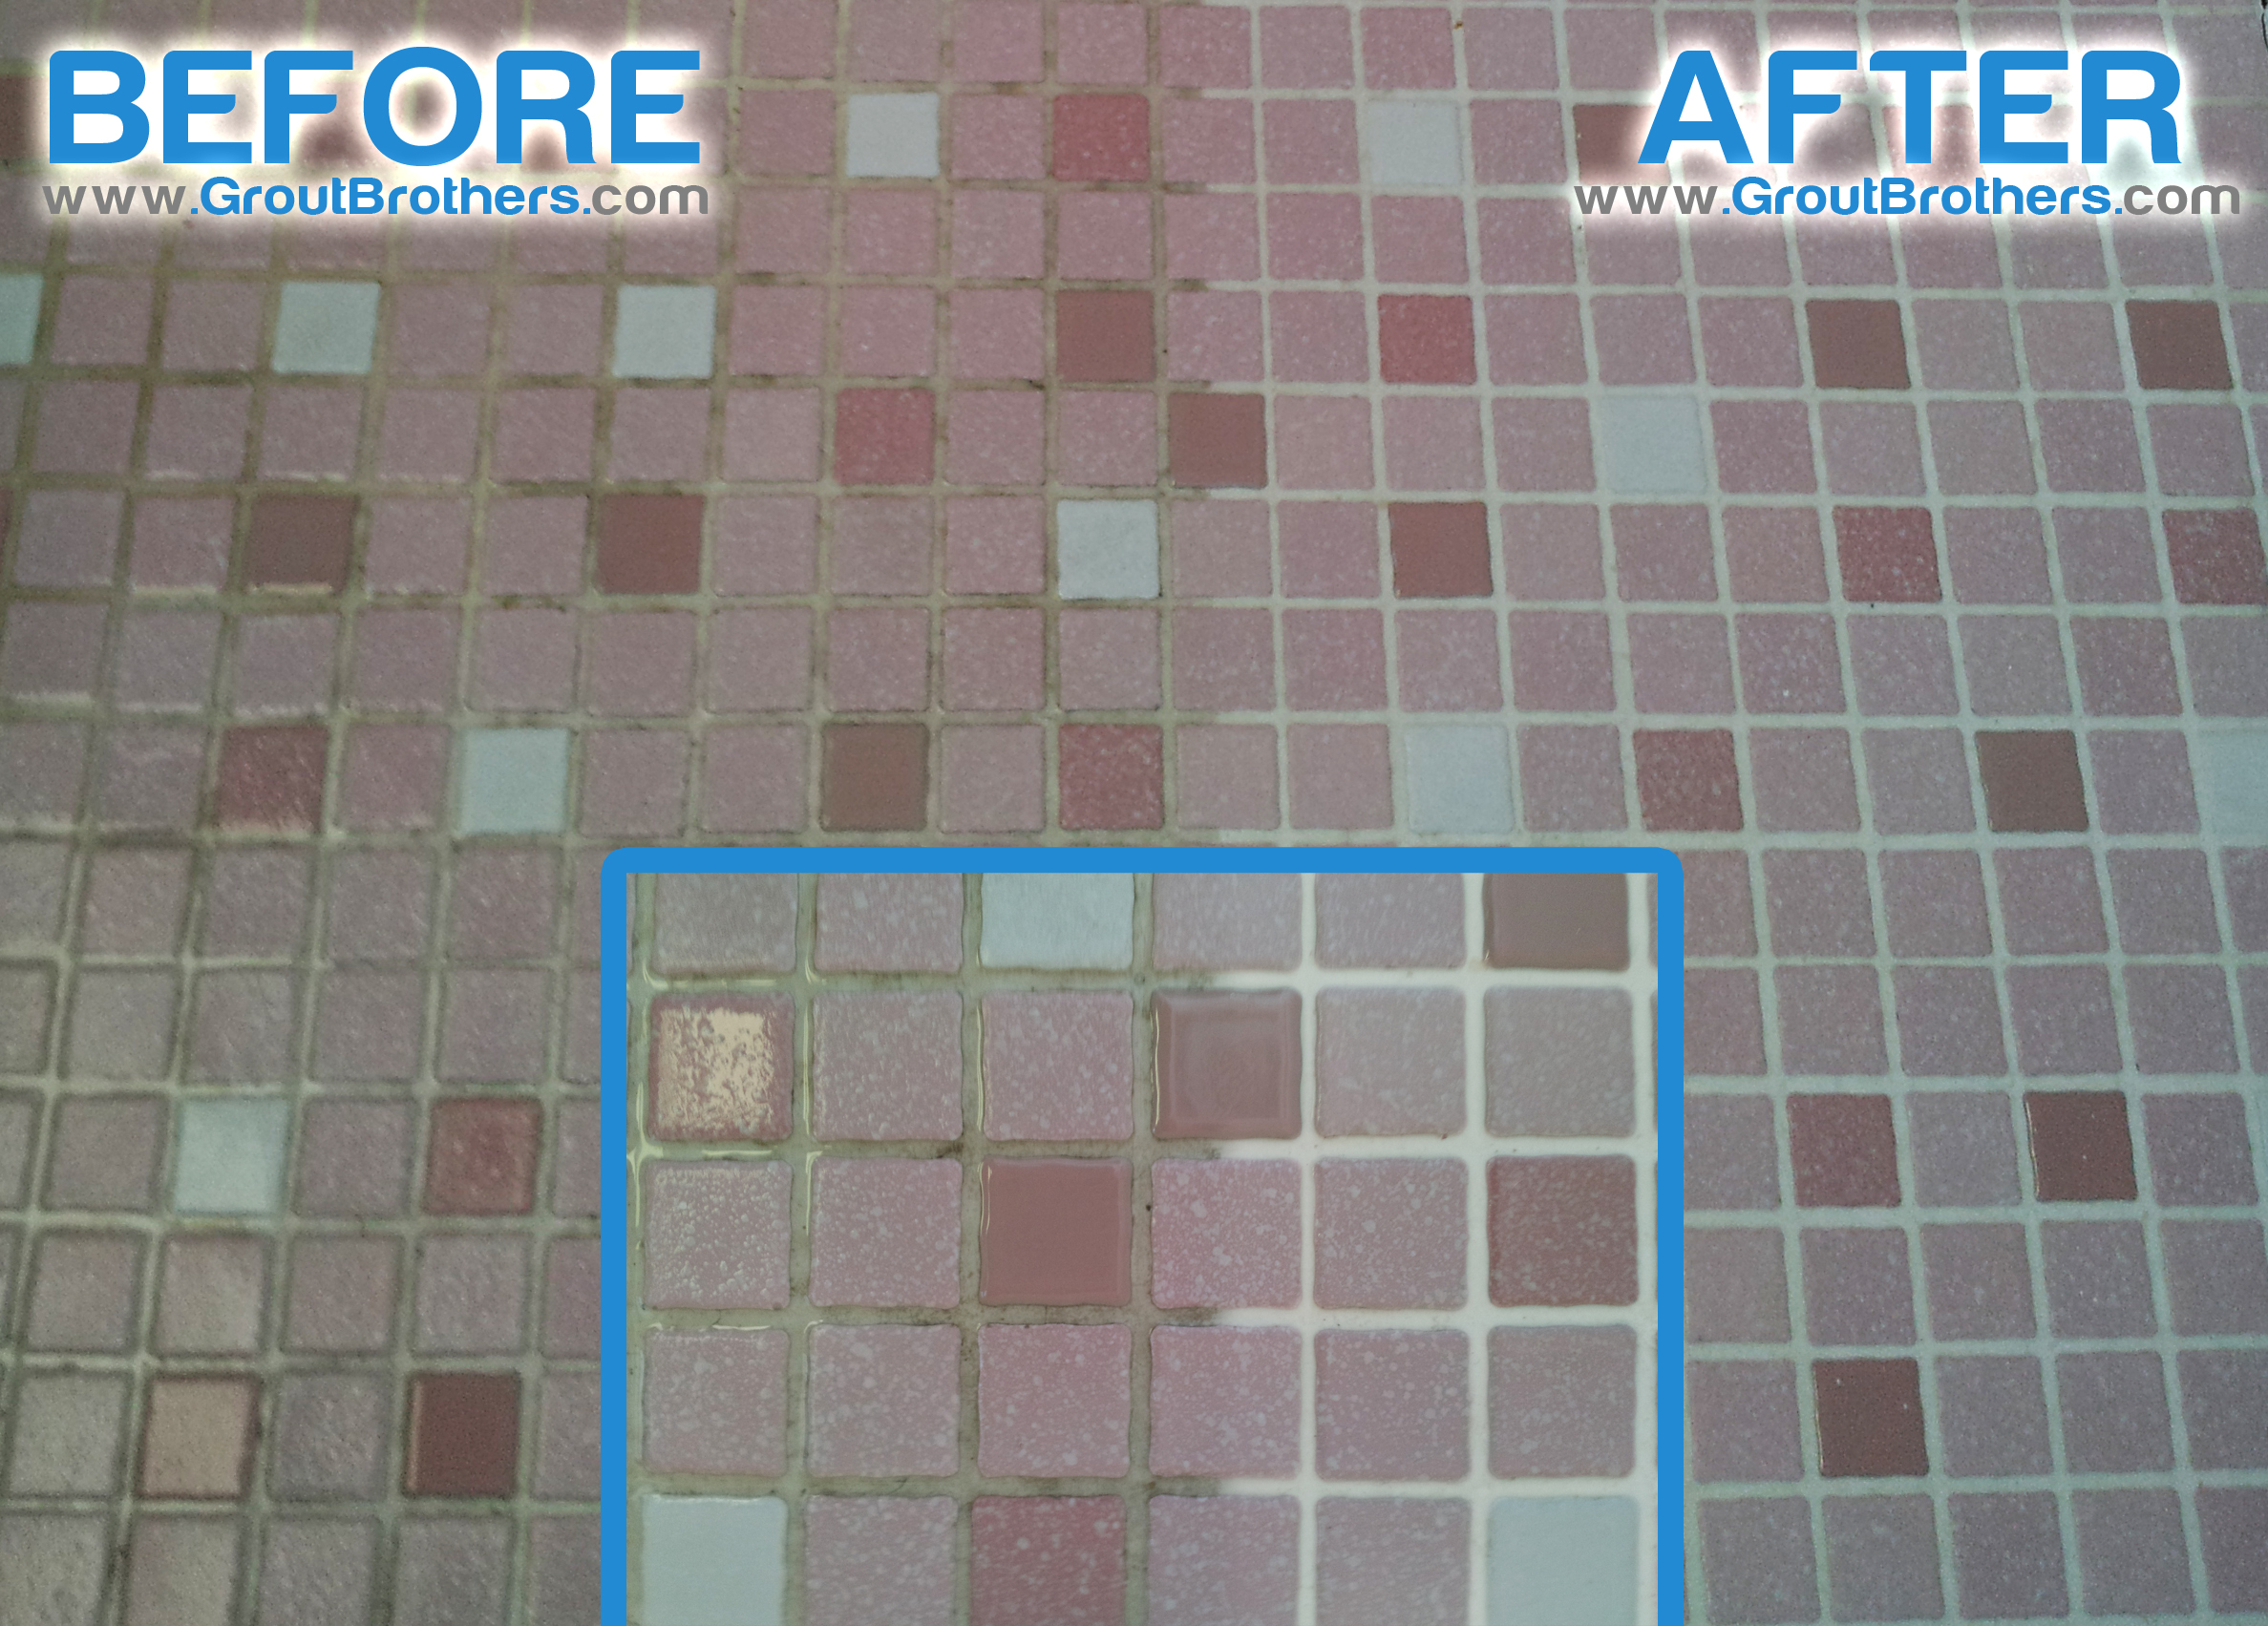 Professional tile and grout cleaning sarasota fl grout brothers tile and grout cleaning doublecrazyfo Images